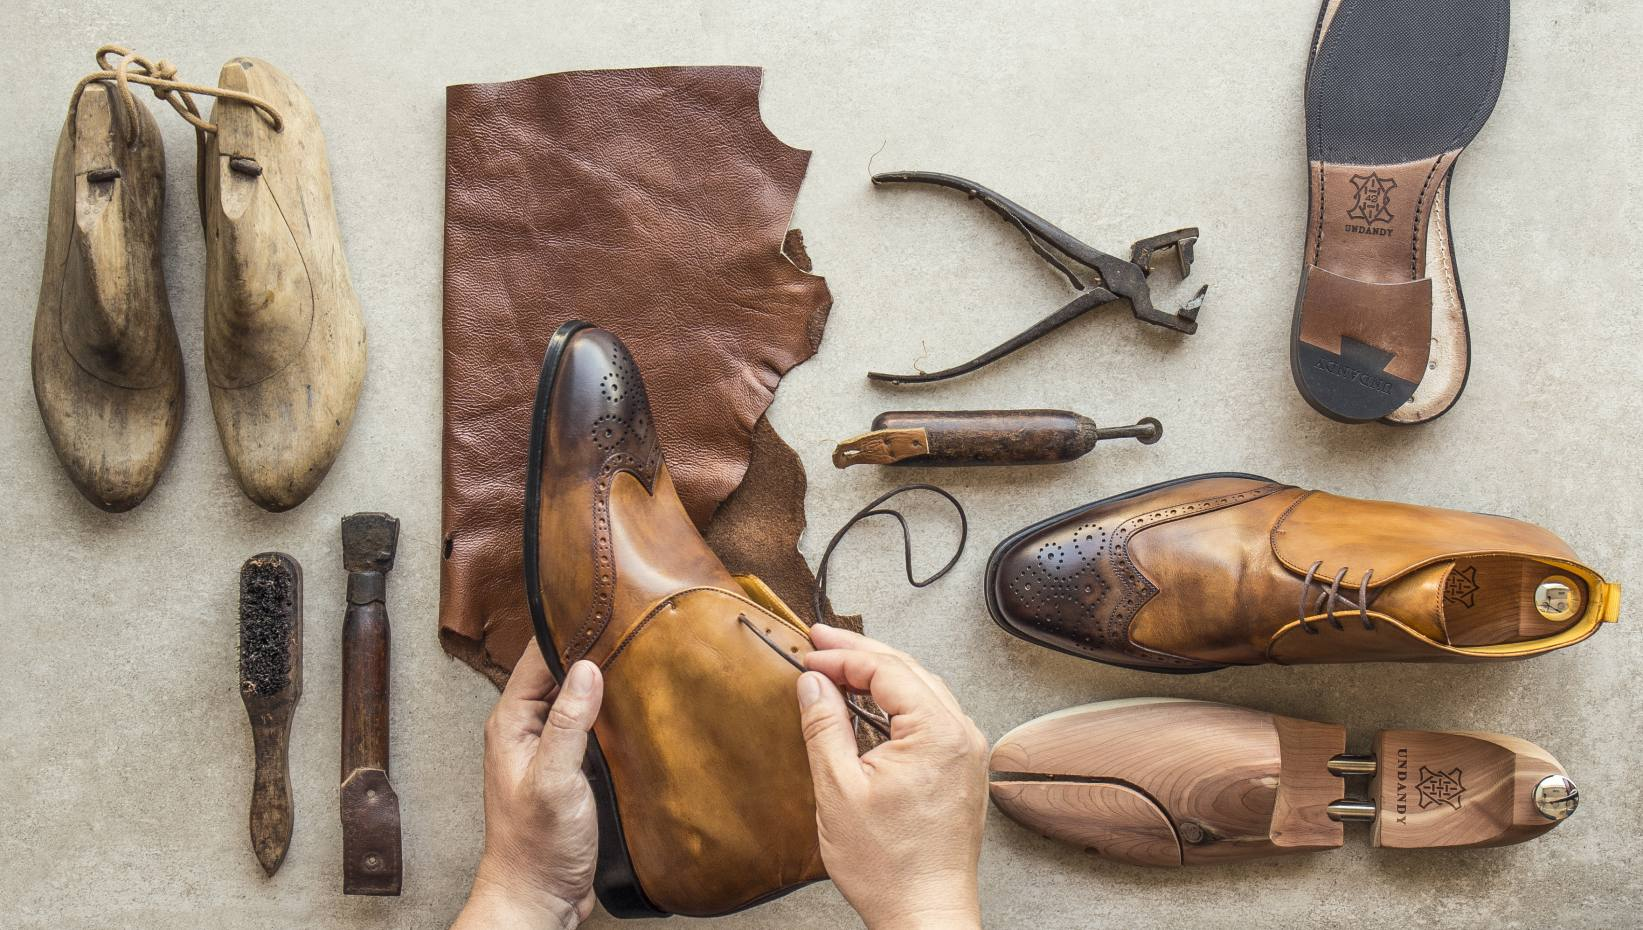 what is so special about handcrafted how to spend it